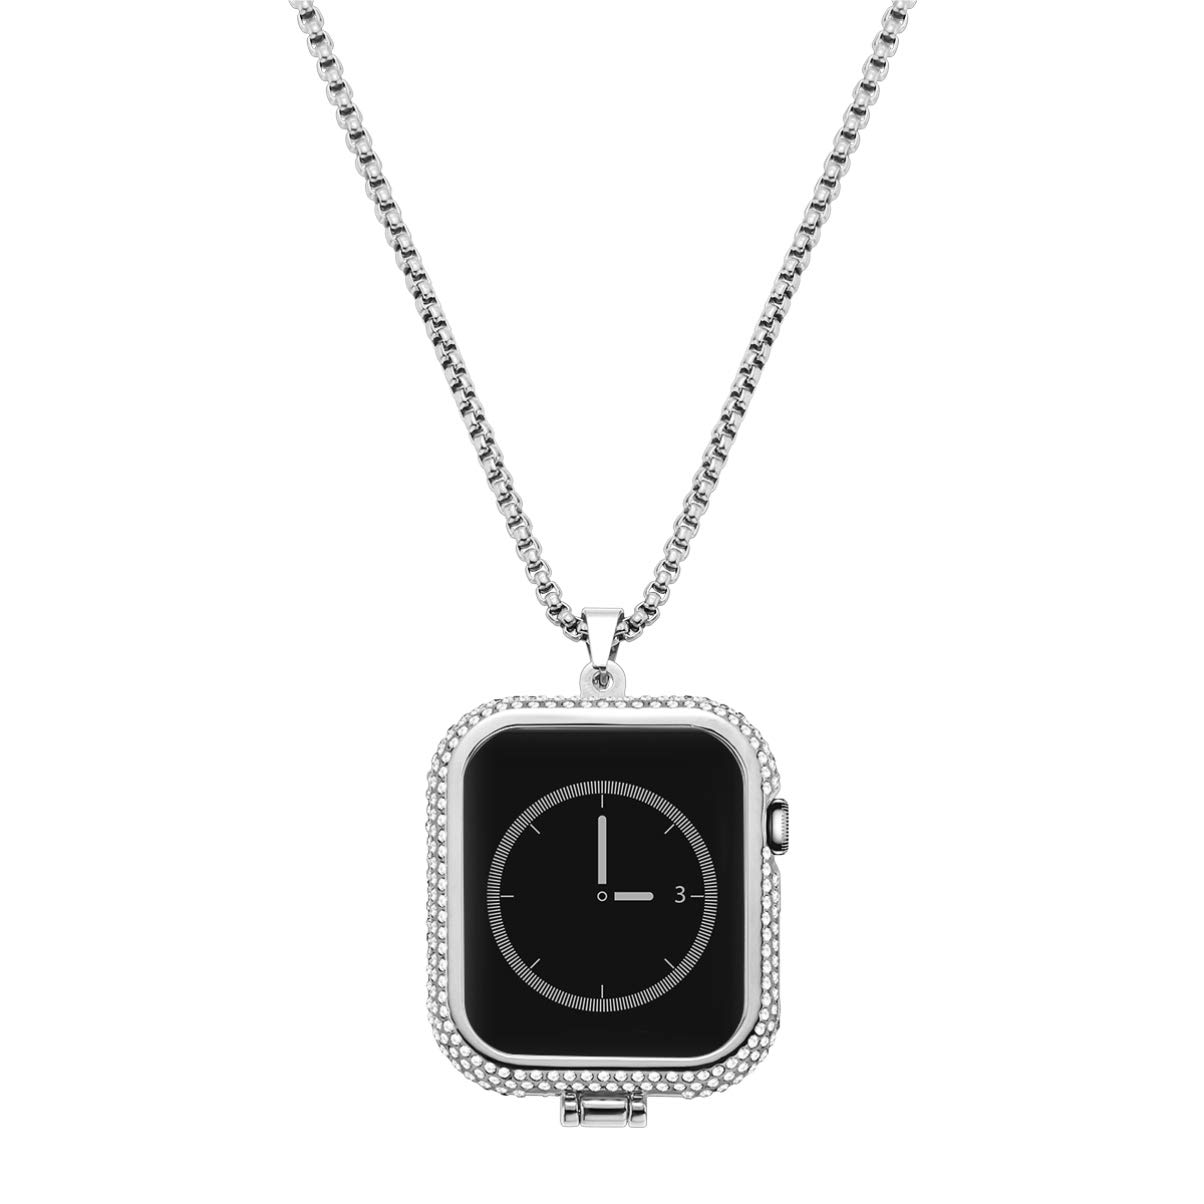 NICERIO NICERIO Compatible with Apple Watch Series 4 Diamond Metal iWatch Necklace Pendant Frame Protective Case Bumper Silver (40mm) by NICERIO